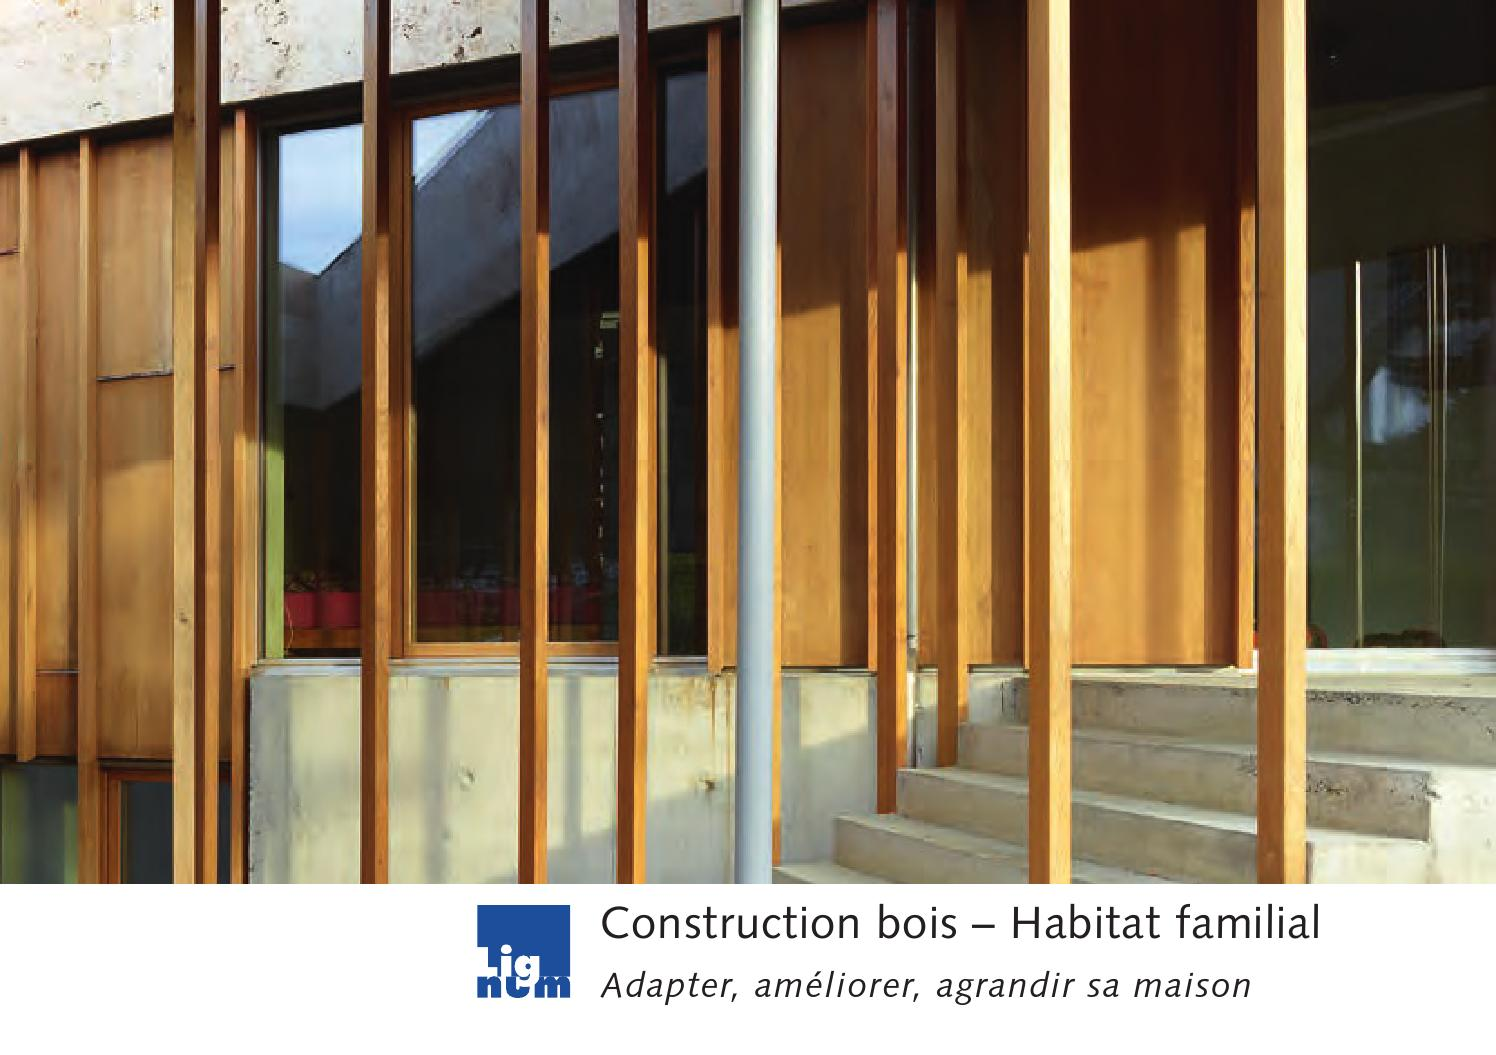 Construction bois habitat familial by cedotec issuu for Construction bois 88